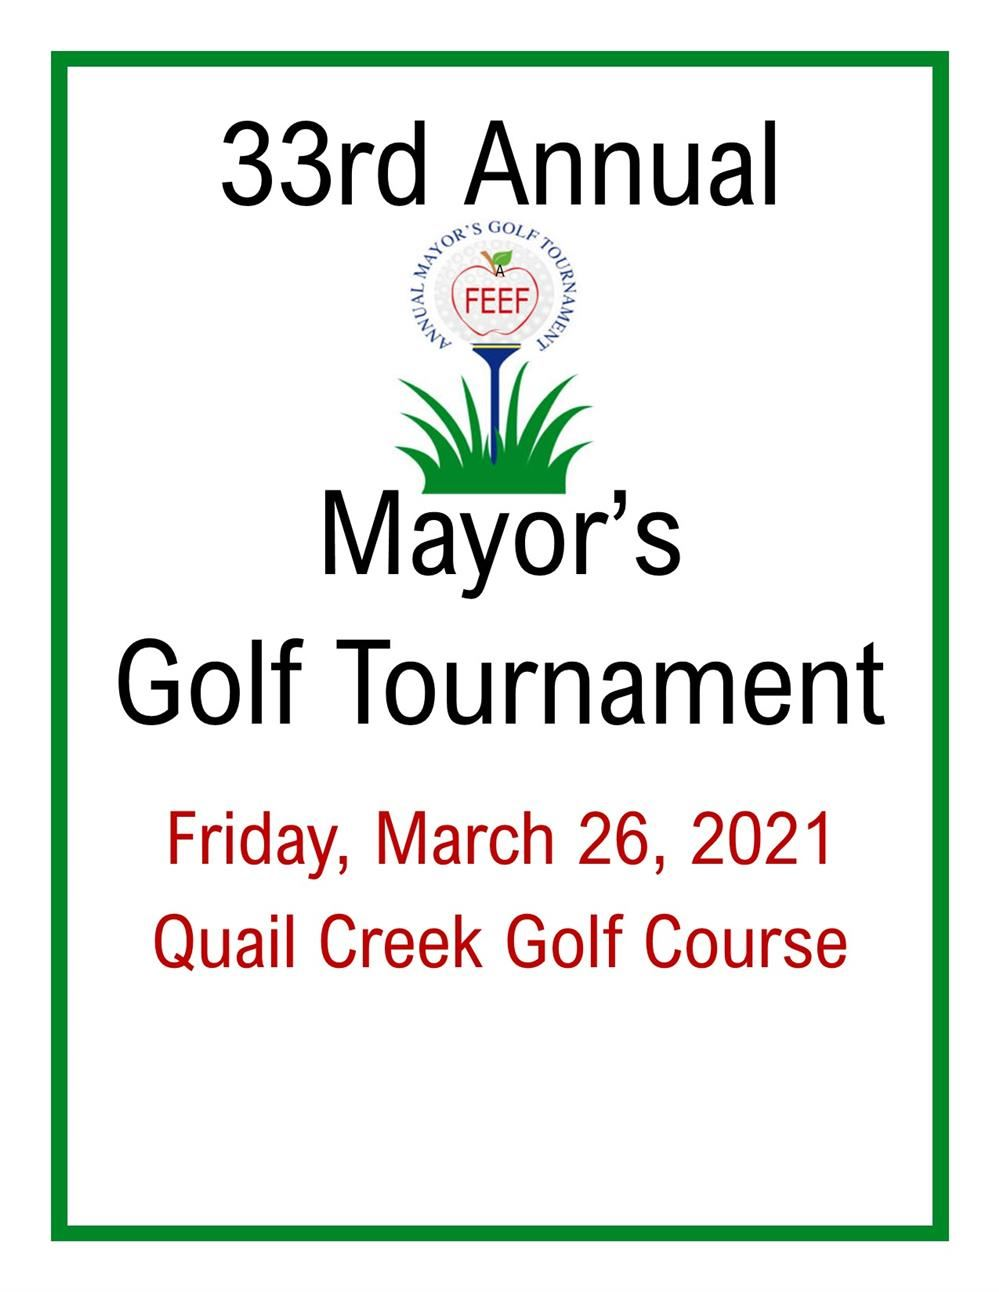 FEEF Mayor's Golf Tournament